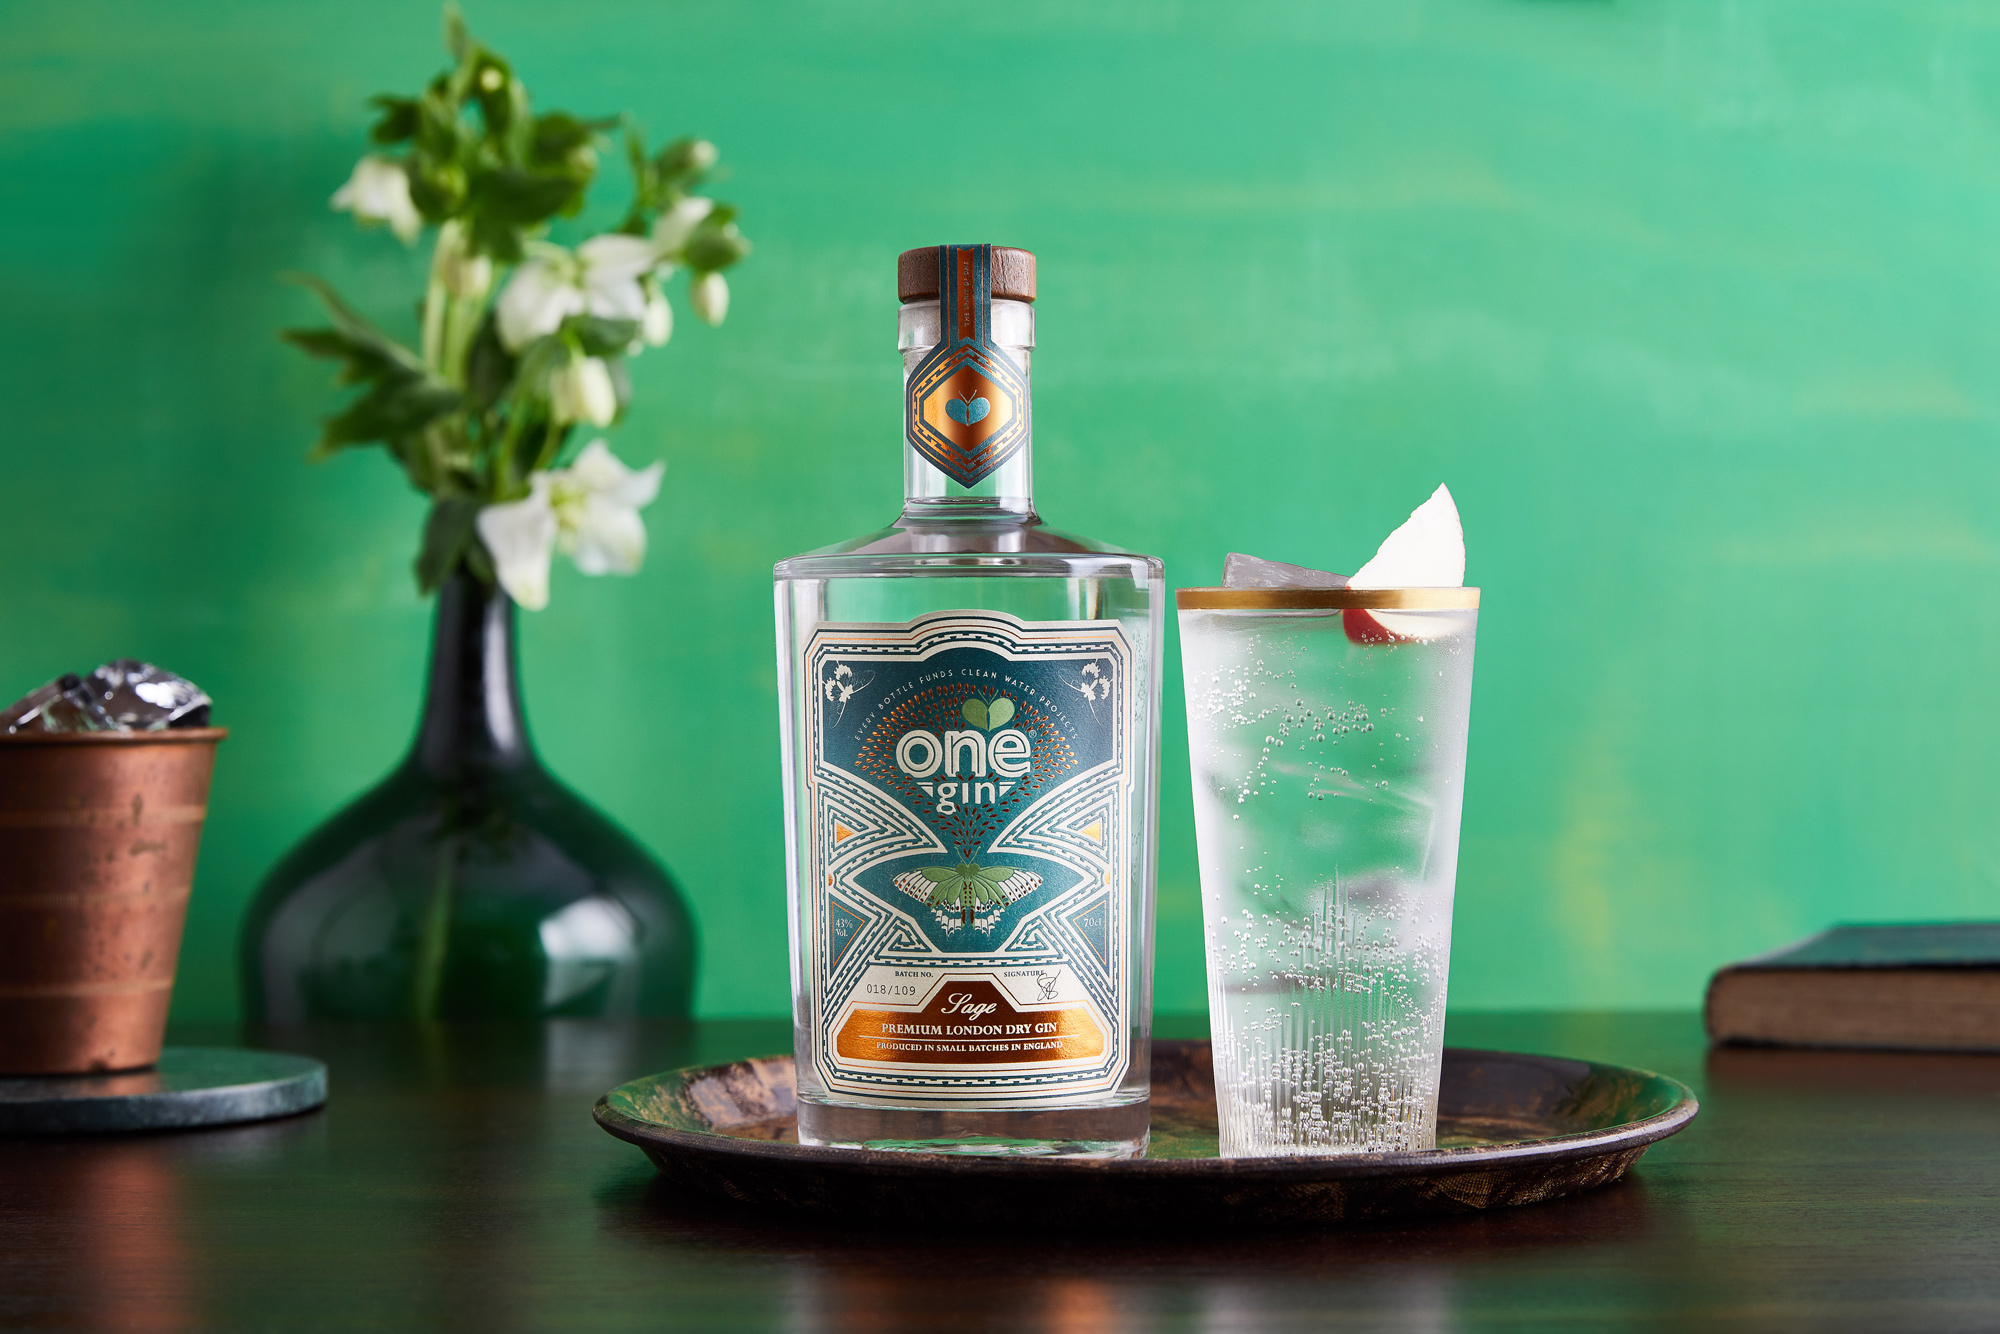 Hero shot of Gin bottle and glass on green background